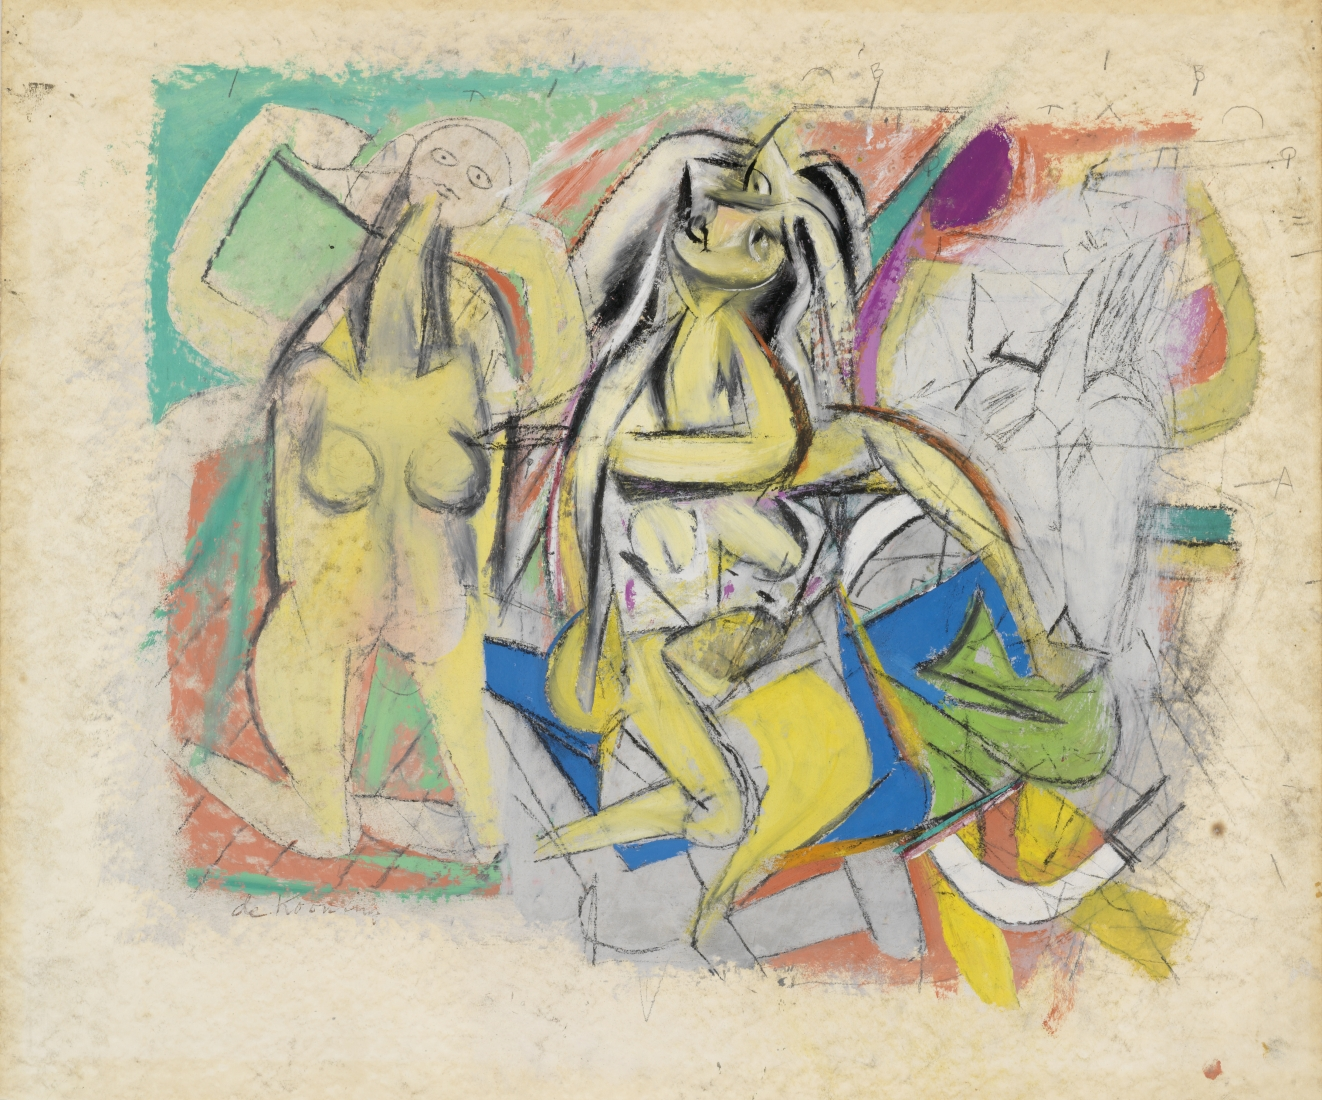 Coming Soon: Willem de Kooning: Men and Women: 1938-48